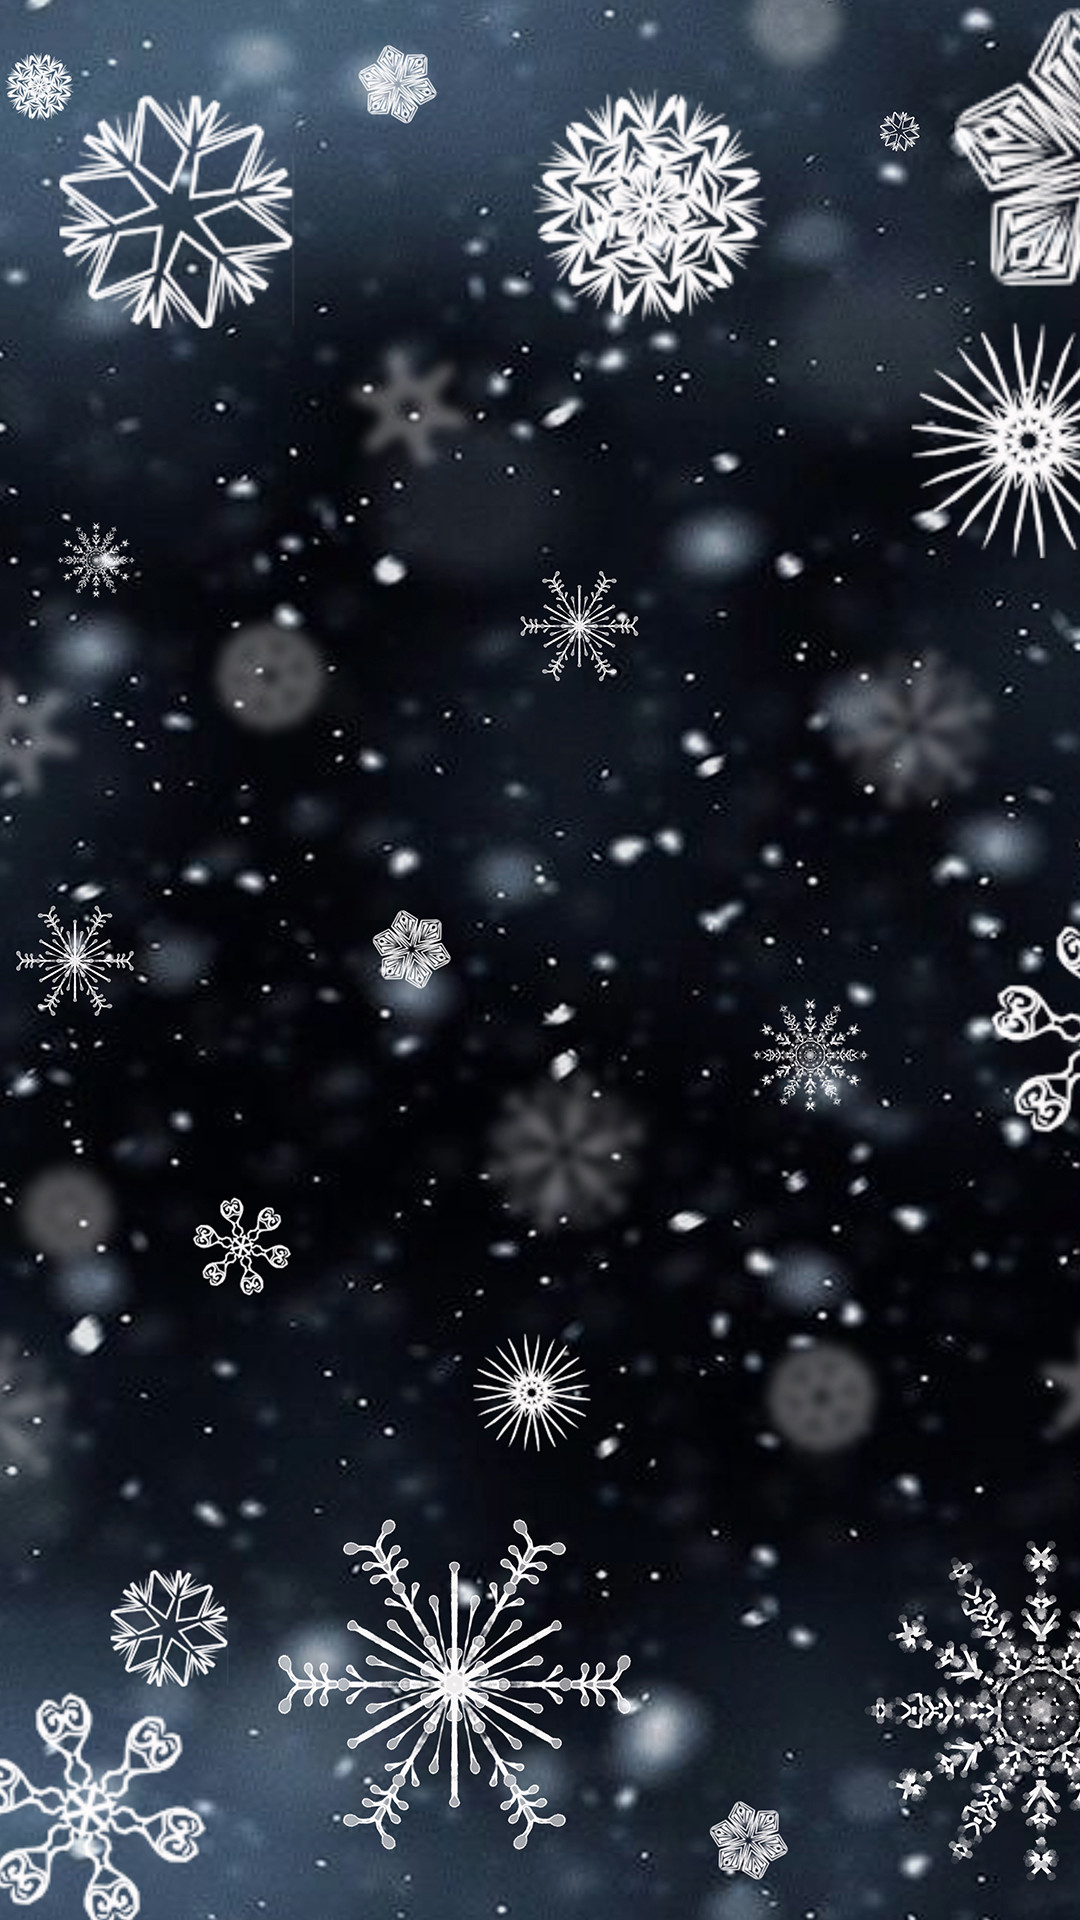 Res: 1080x1920, Download · Snowflakes Phone Wallpaper